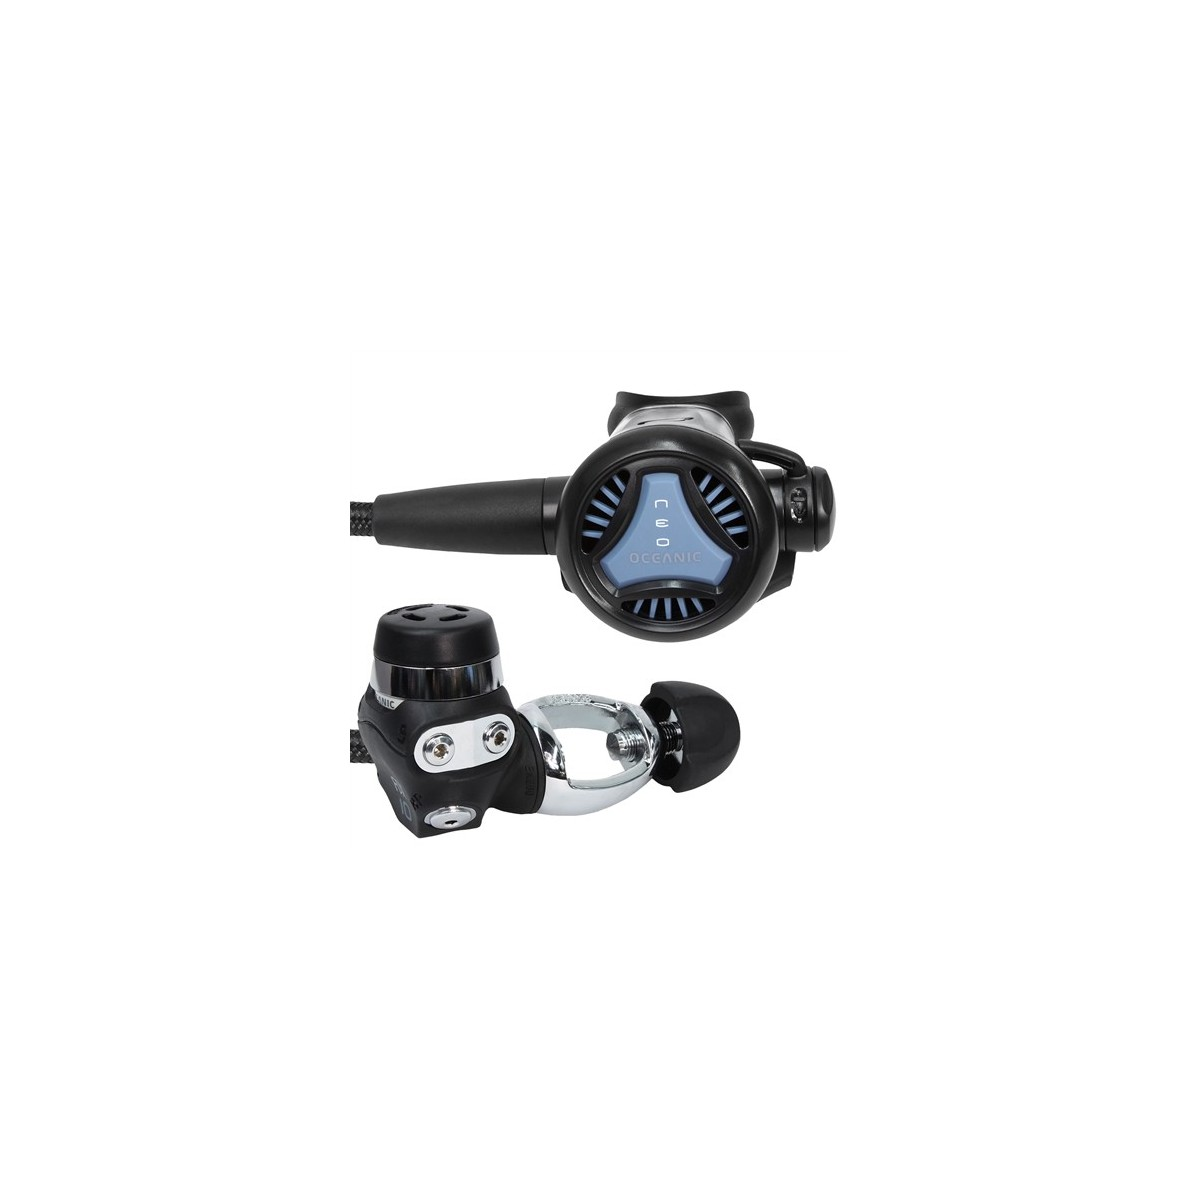 Oceanic Neo 2nd with FDX10 1st Stage Yoke Scuba Diving Regulator